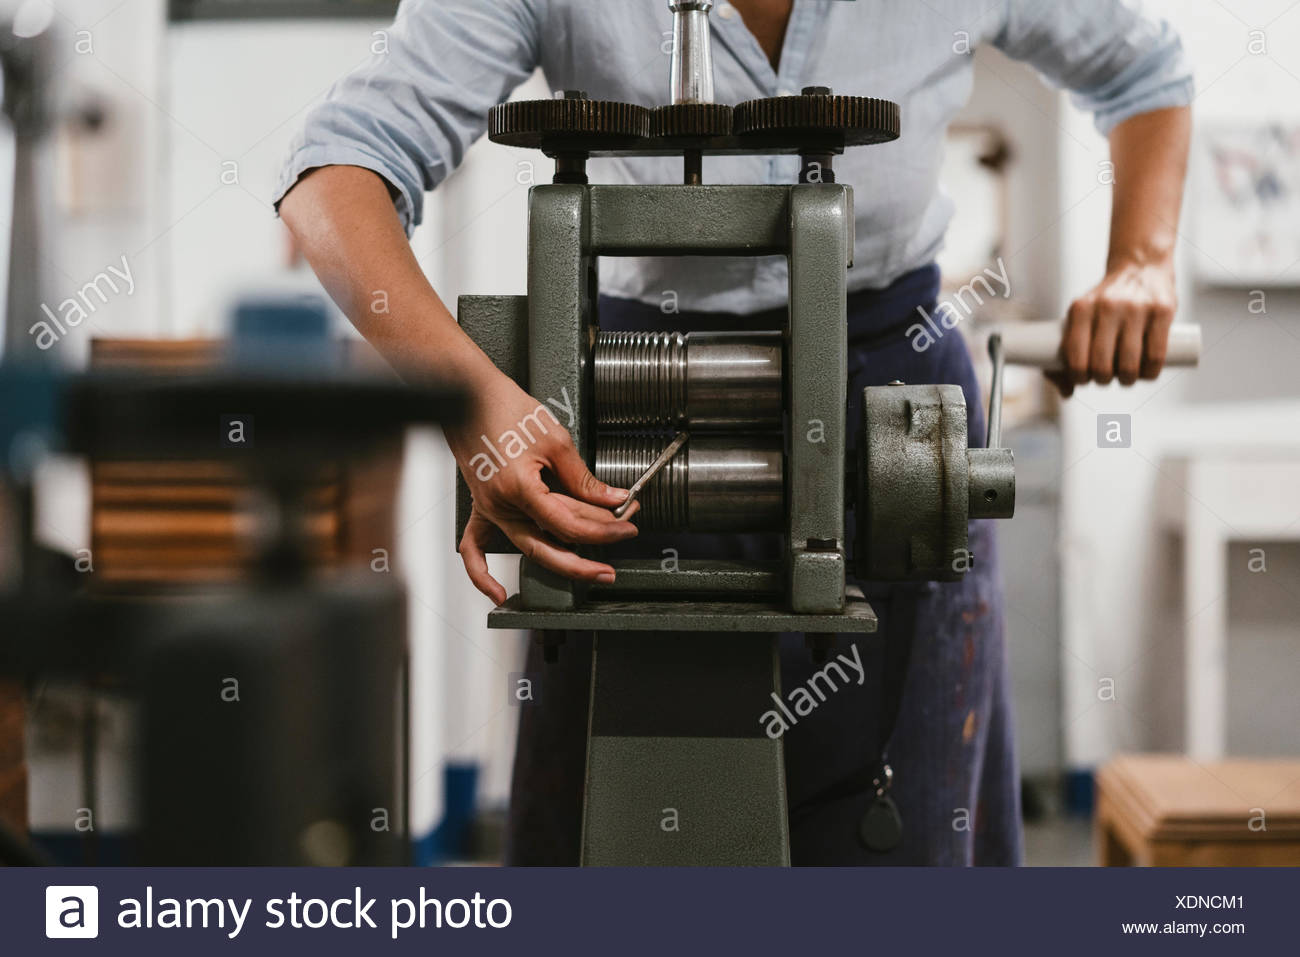 Mid section of female jeweller winding metal rod through machine in jewellery workshop - Stock Image